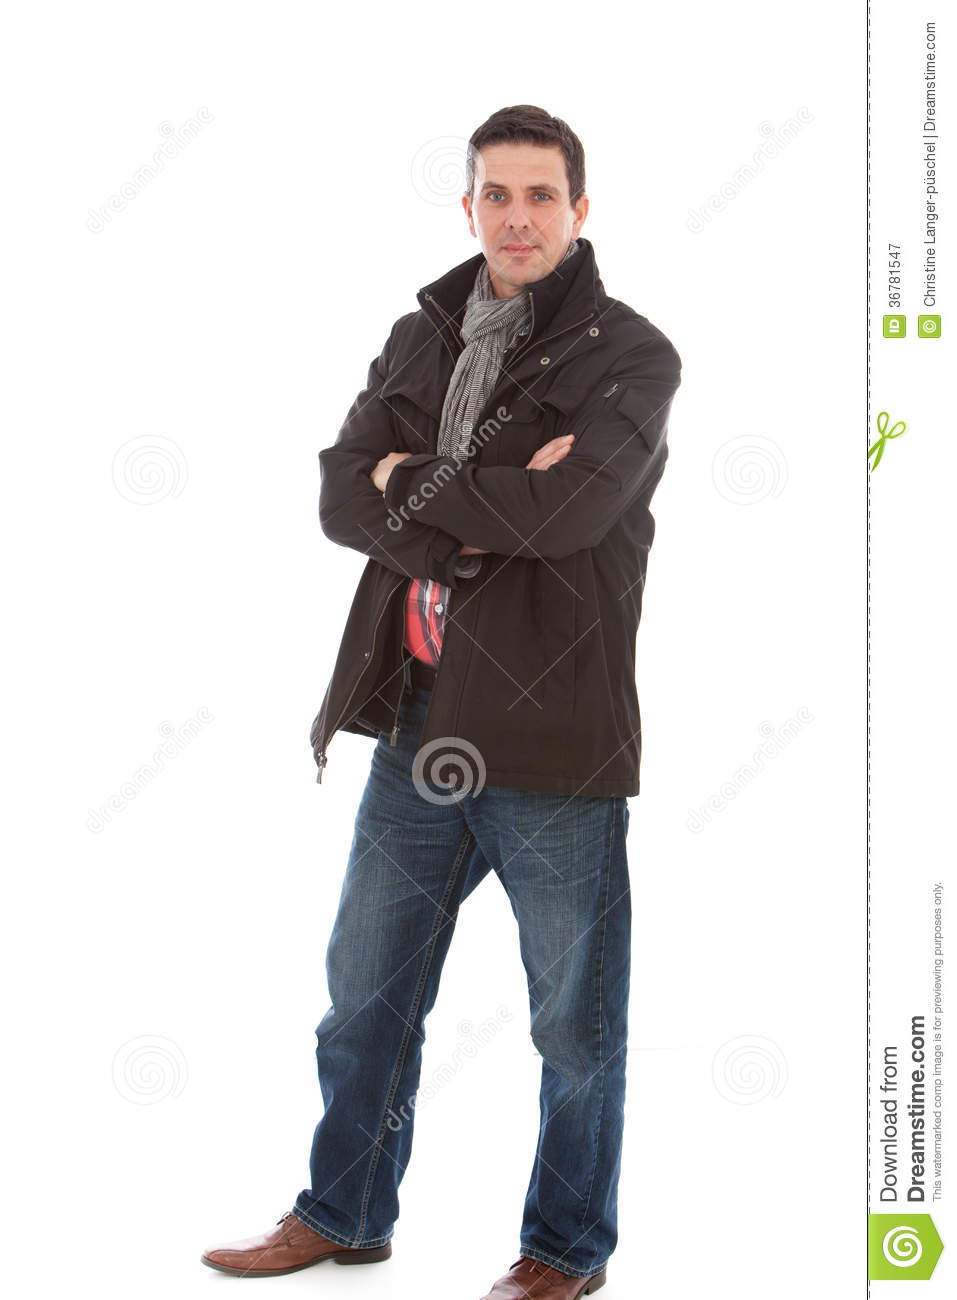 Smiling Man In Casual Winter Fashion Stock Image - Image ...